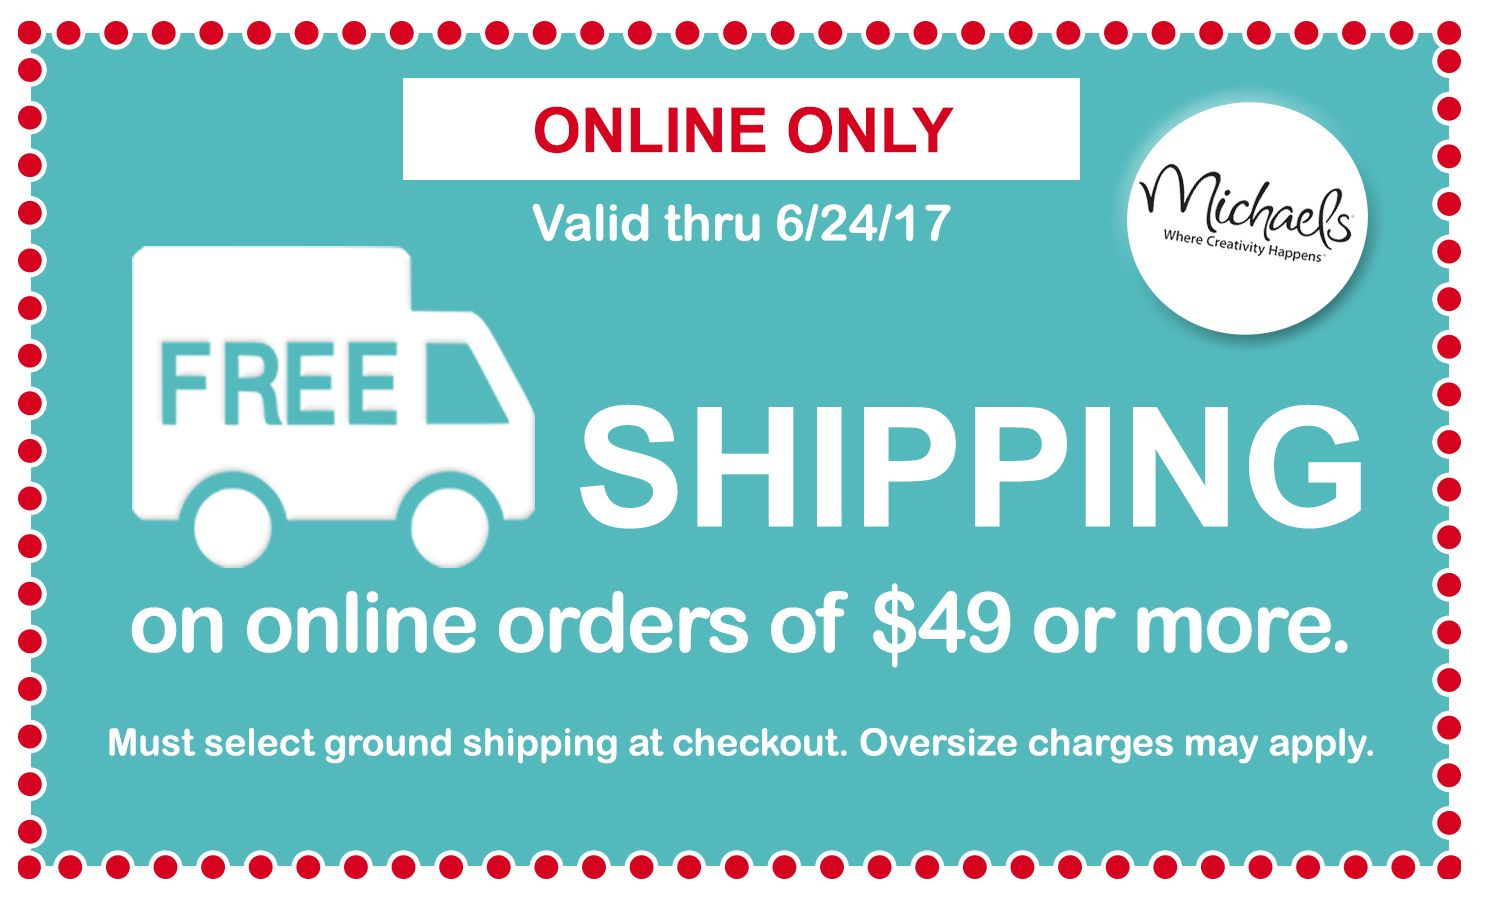 22+ Discount craft supplies free shipping ideas in 2021